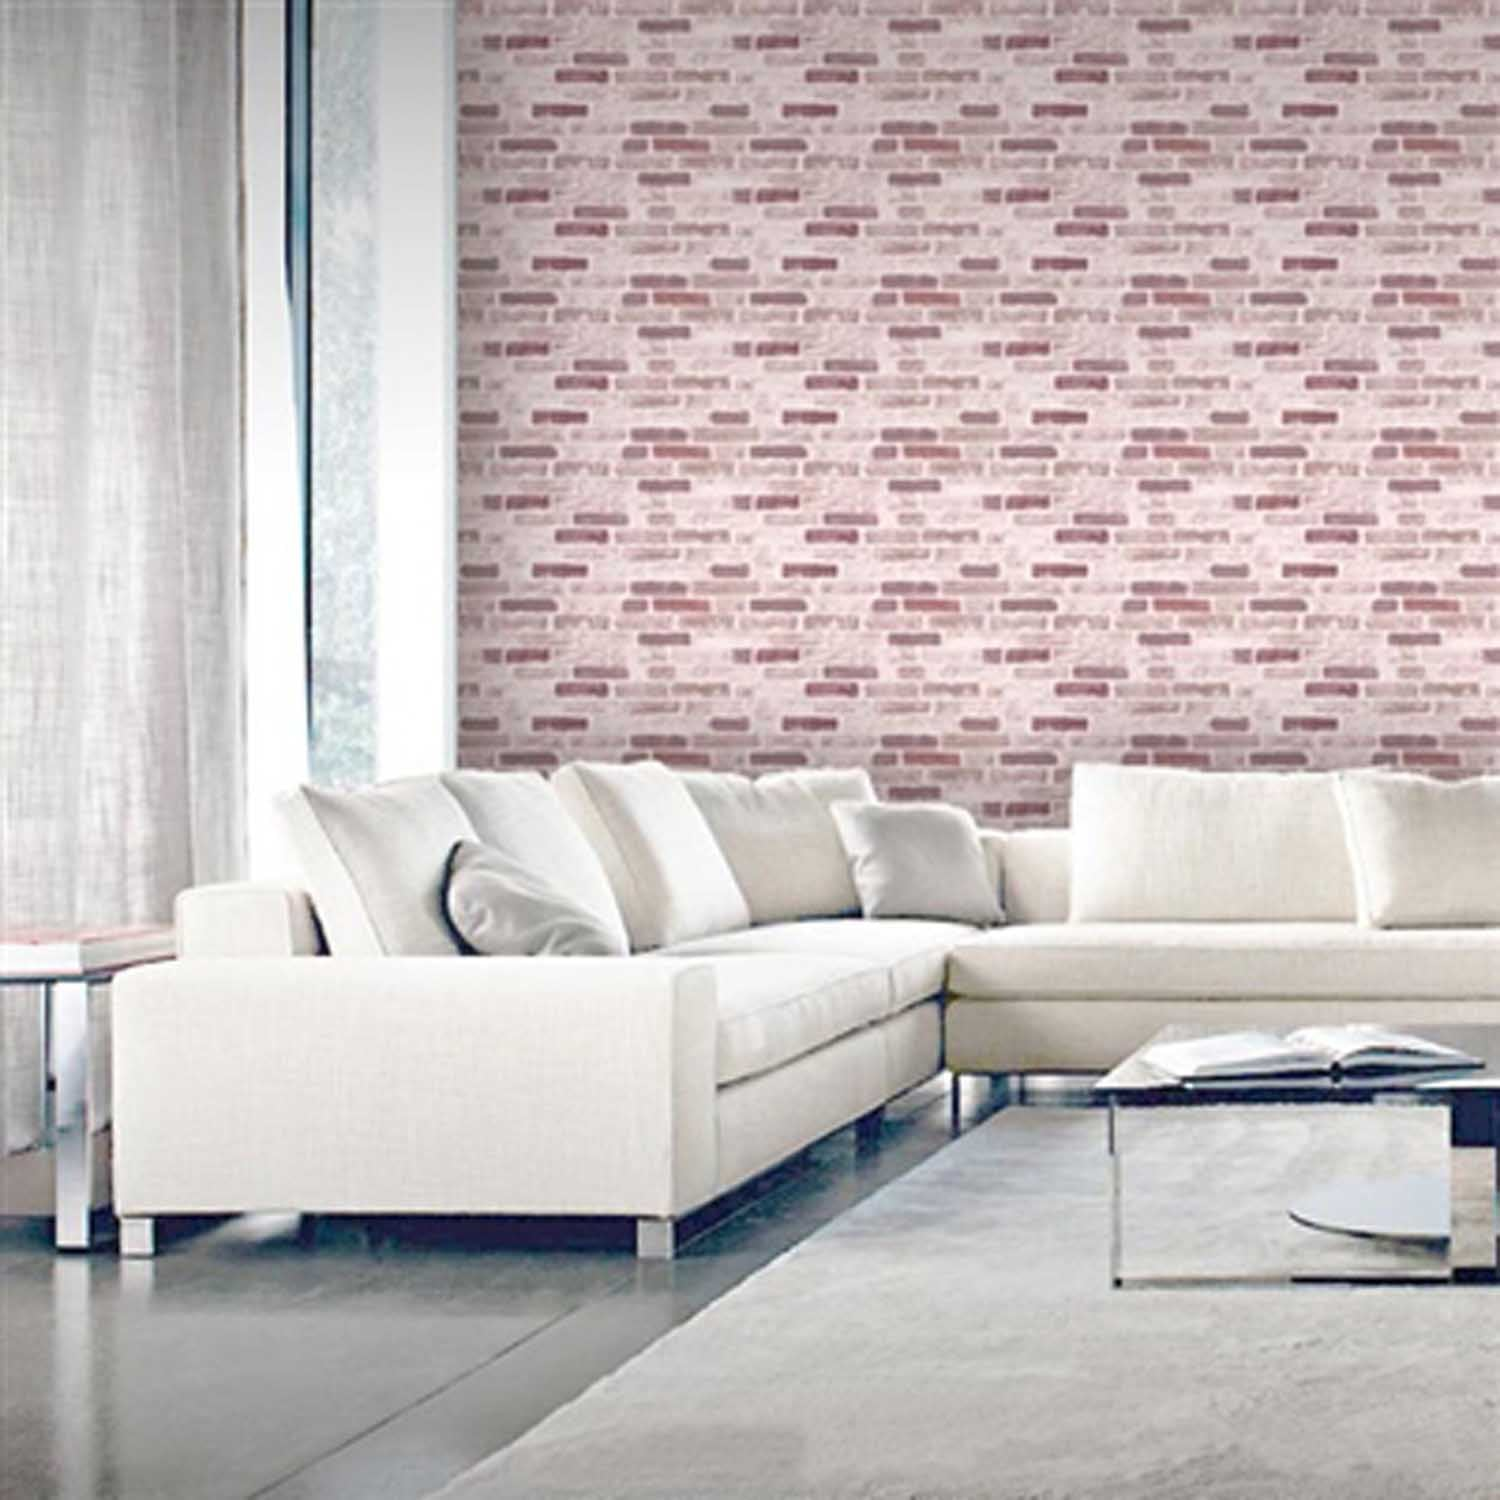 Great Value: Roman Brick Wallpaper |Red